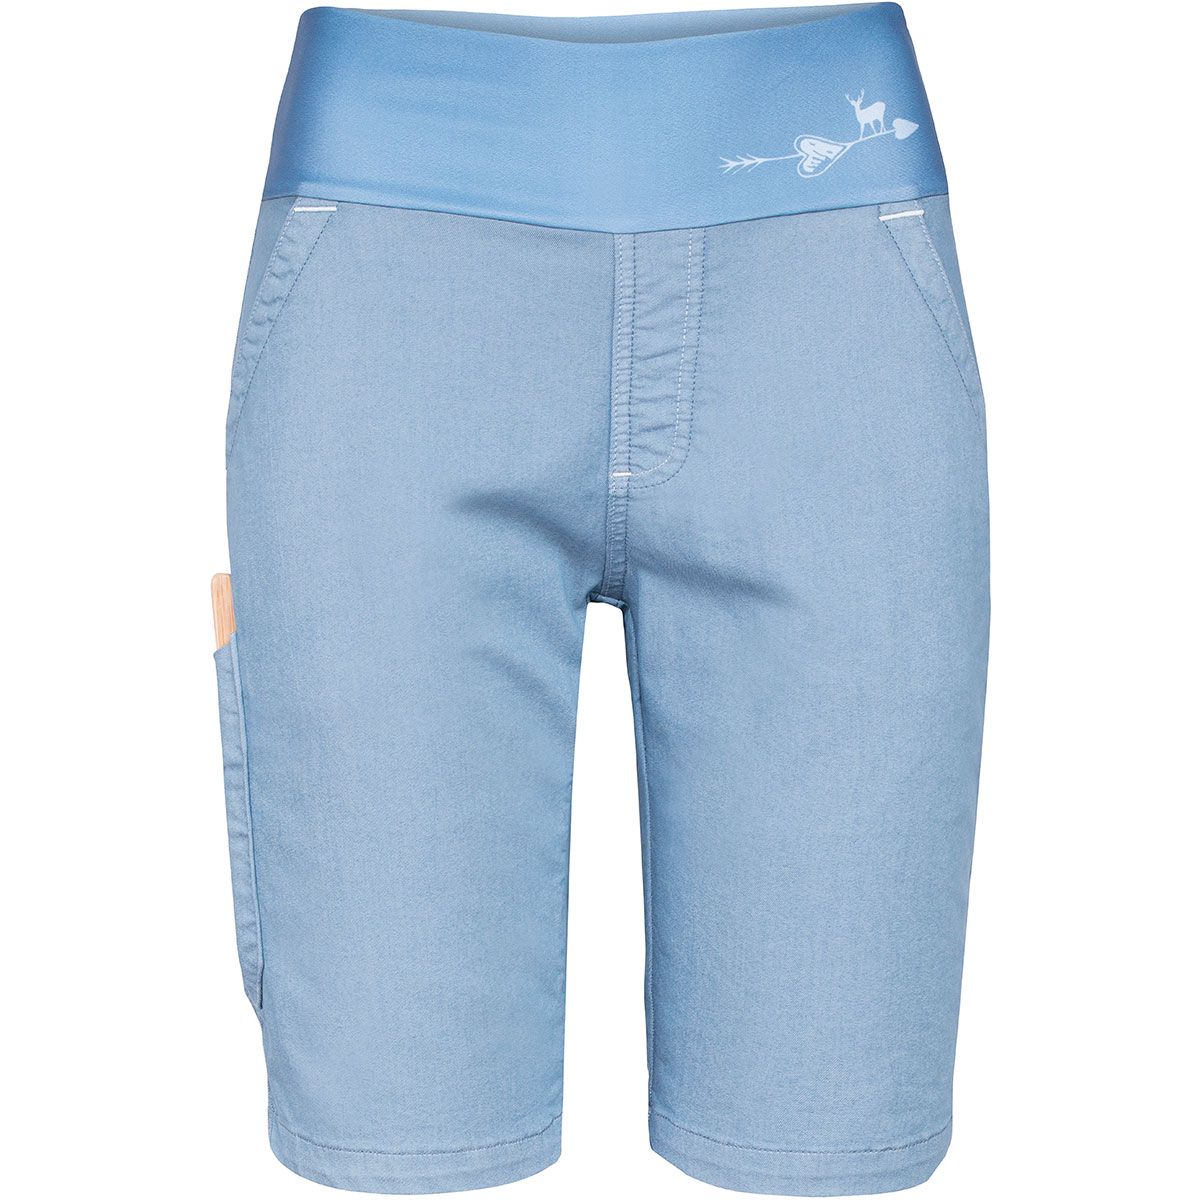 Chillaz shorts